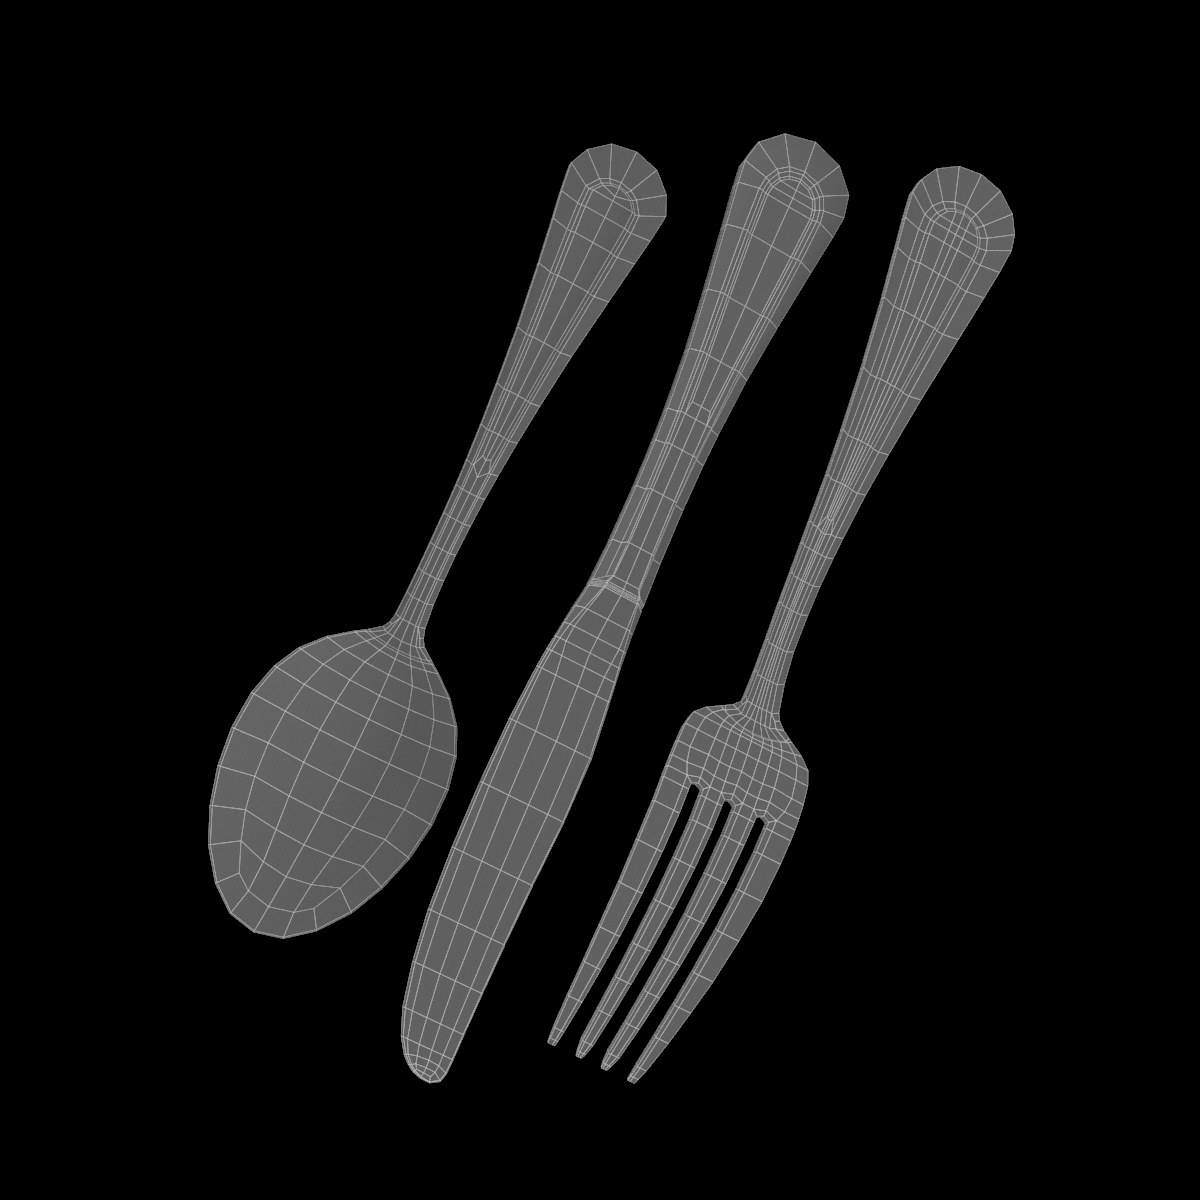 table dinner knife, fork, spoon classic cutlery 3d model 3ds max fbx c4d ma mb  obj 284633